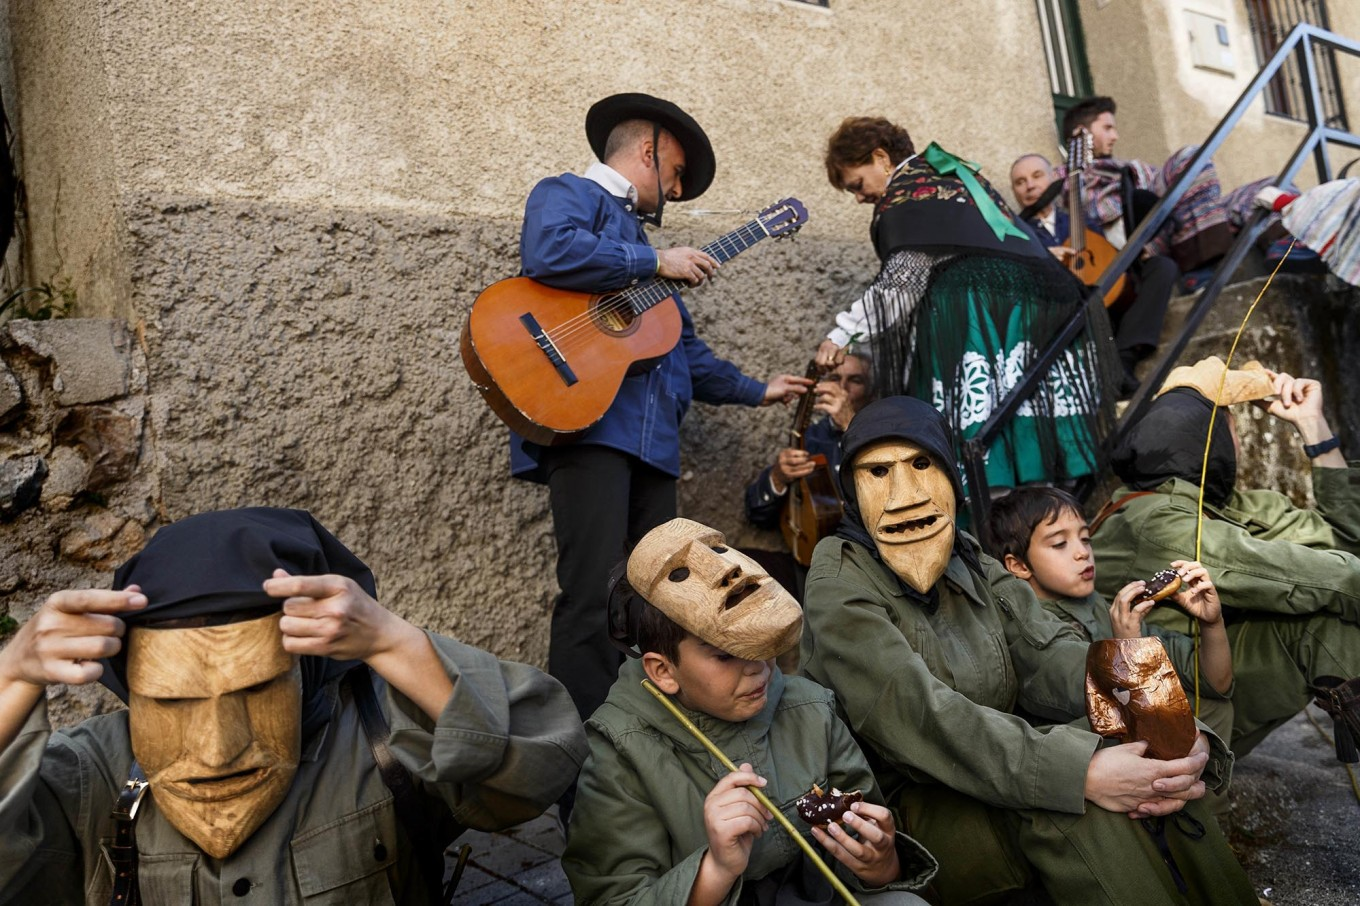 In this April 1, 2017 picture revelers from San Pedro Bernardo village wearing the traditional 'Machurrero' mask and outfit rest and eat after a parade during a gathering of different villages' carnival masks and characters in the small village of Casavieja, Spain, Monday, April 3, 2017. These festivals, held across central and northwestern Spain, most often coincide with festivities celebrating the advent of spring, mixing Carnival and bizarre pagan-like rituals with mock battles between good and evil. AP /Daniel Ochoa de Olza